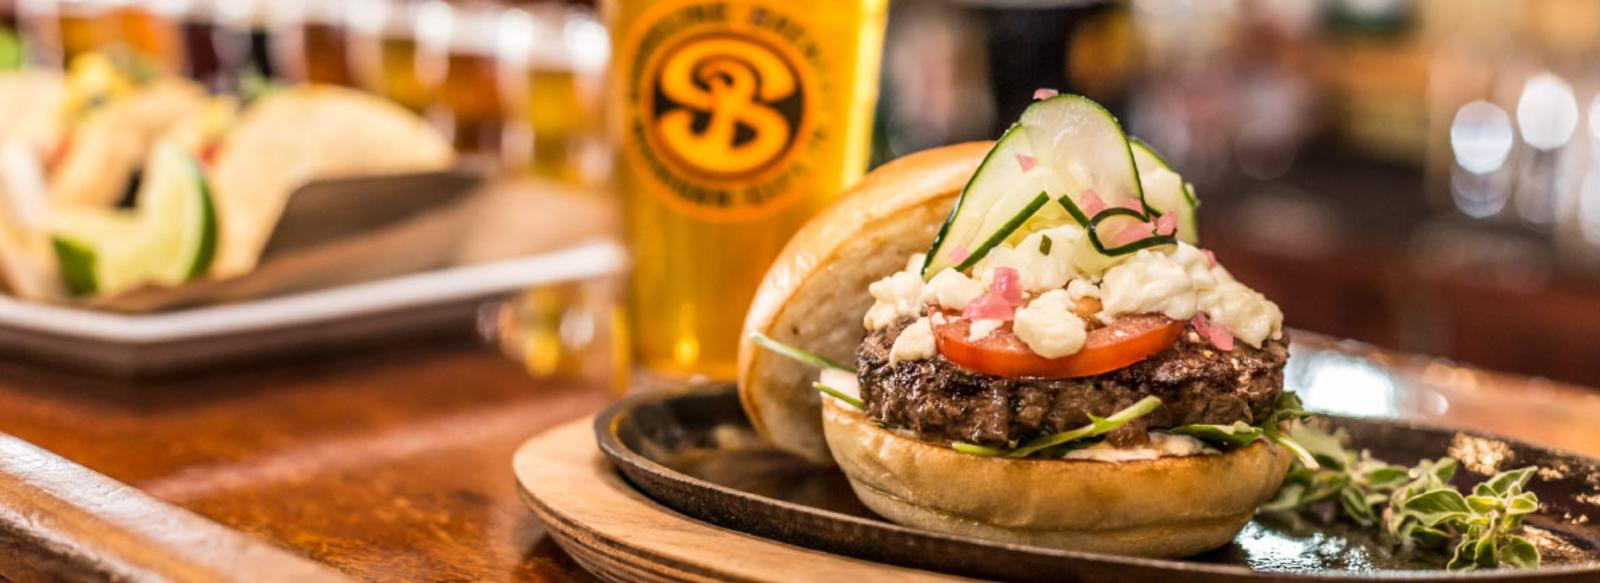 Shoreline-Brewery-Michigan-City-Burger-NW-Indiana-Restaurants